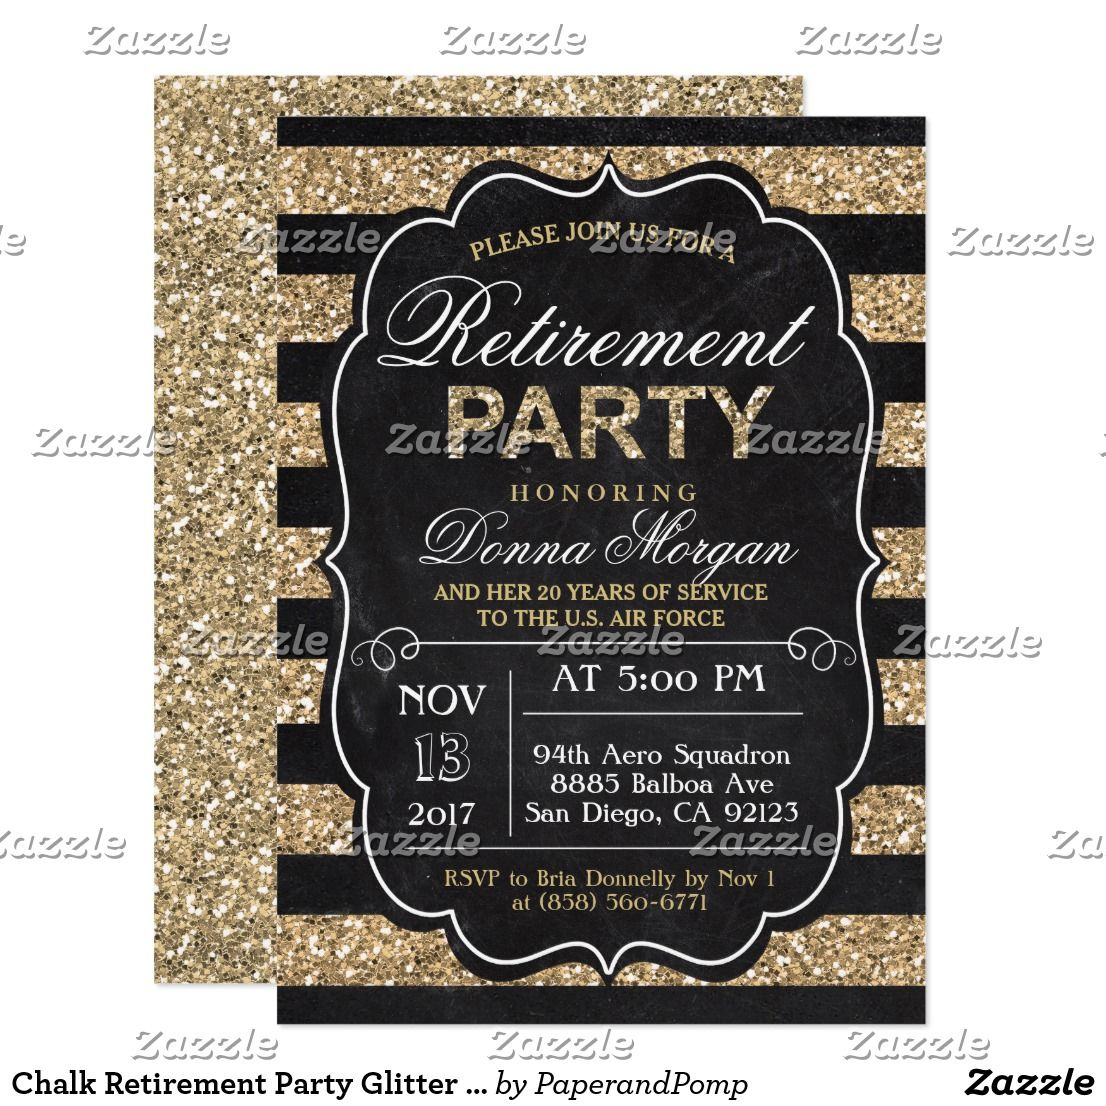 Chalk Retirement Party Glitter Invitation   Retirement parties and ...